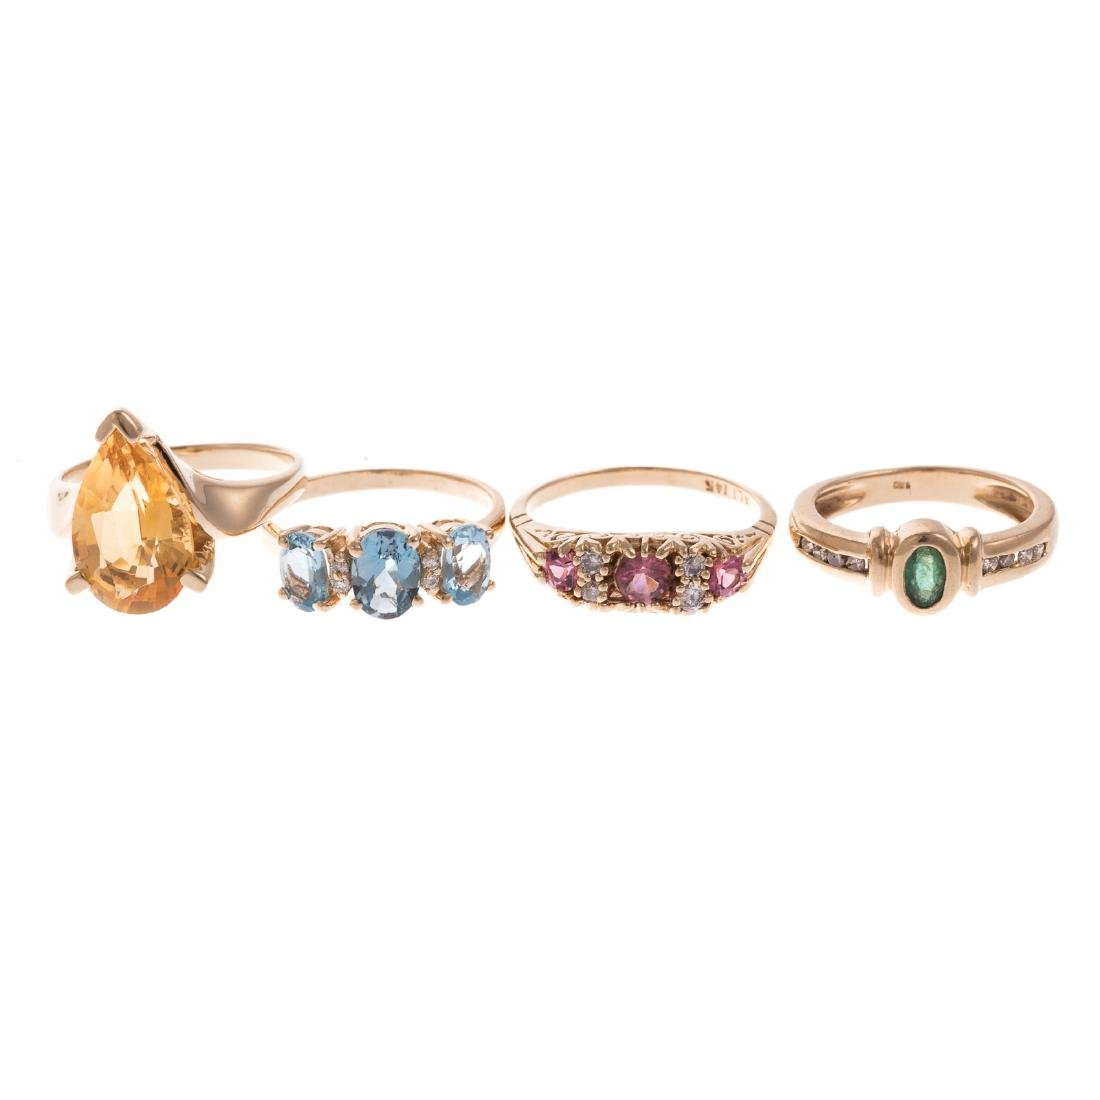 A Collection of 4 Gold Gemstone Rings